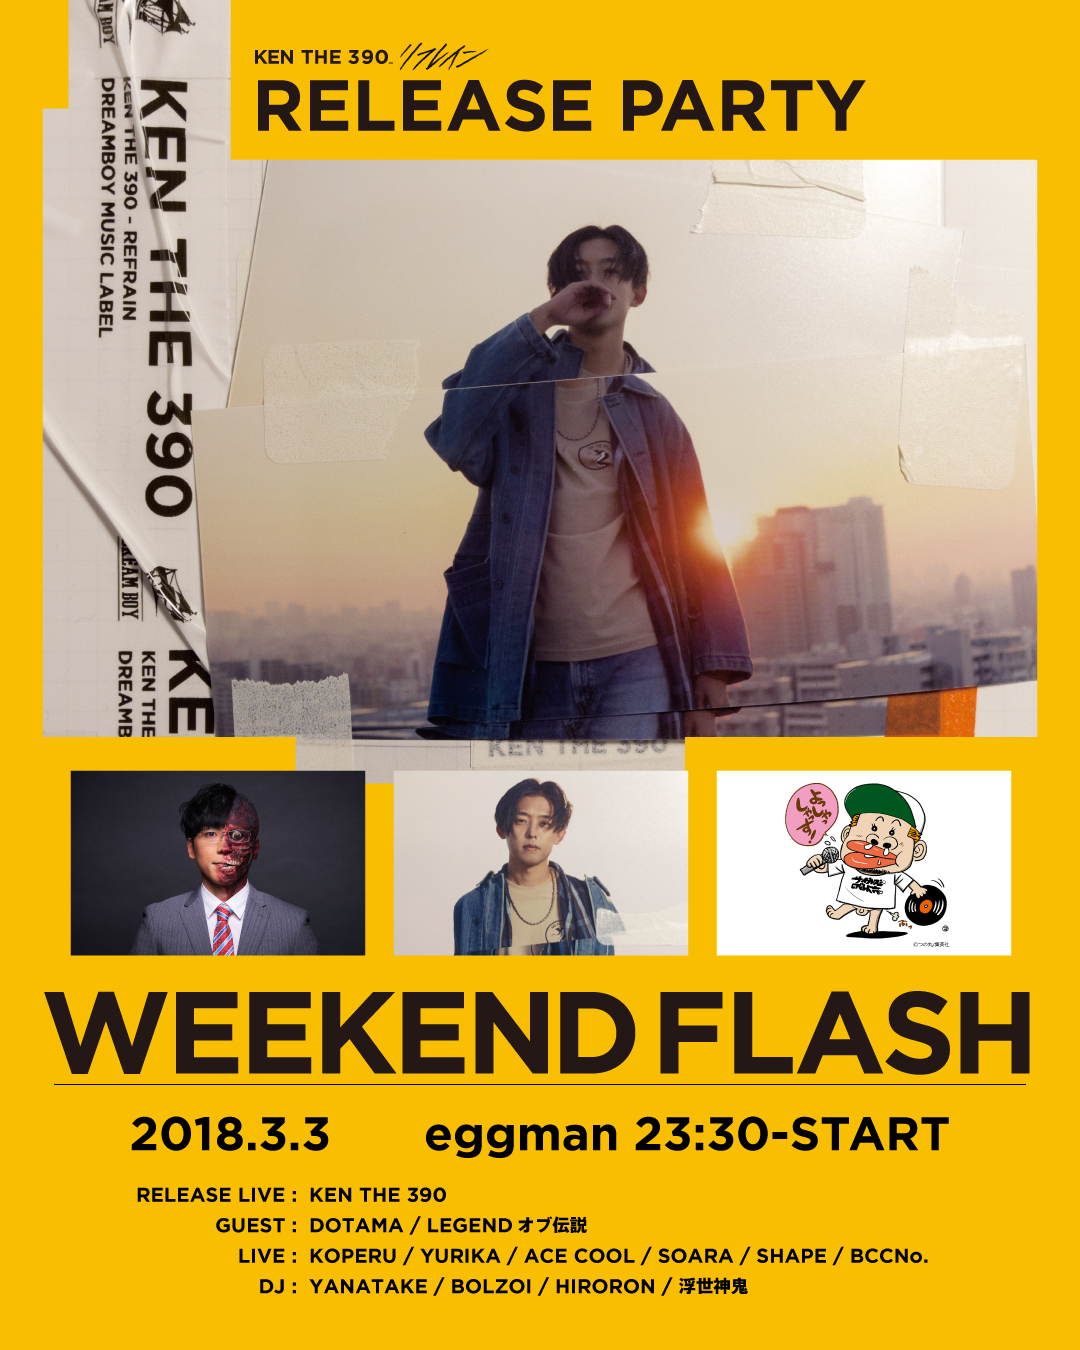 WEEKEND FLASH 〜KEN THE 390 リフレイン Release Party〜